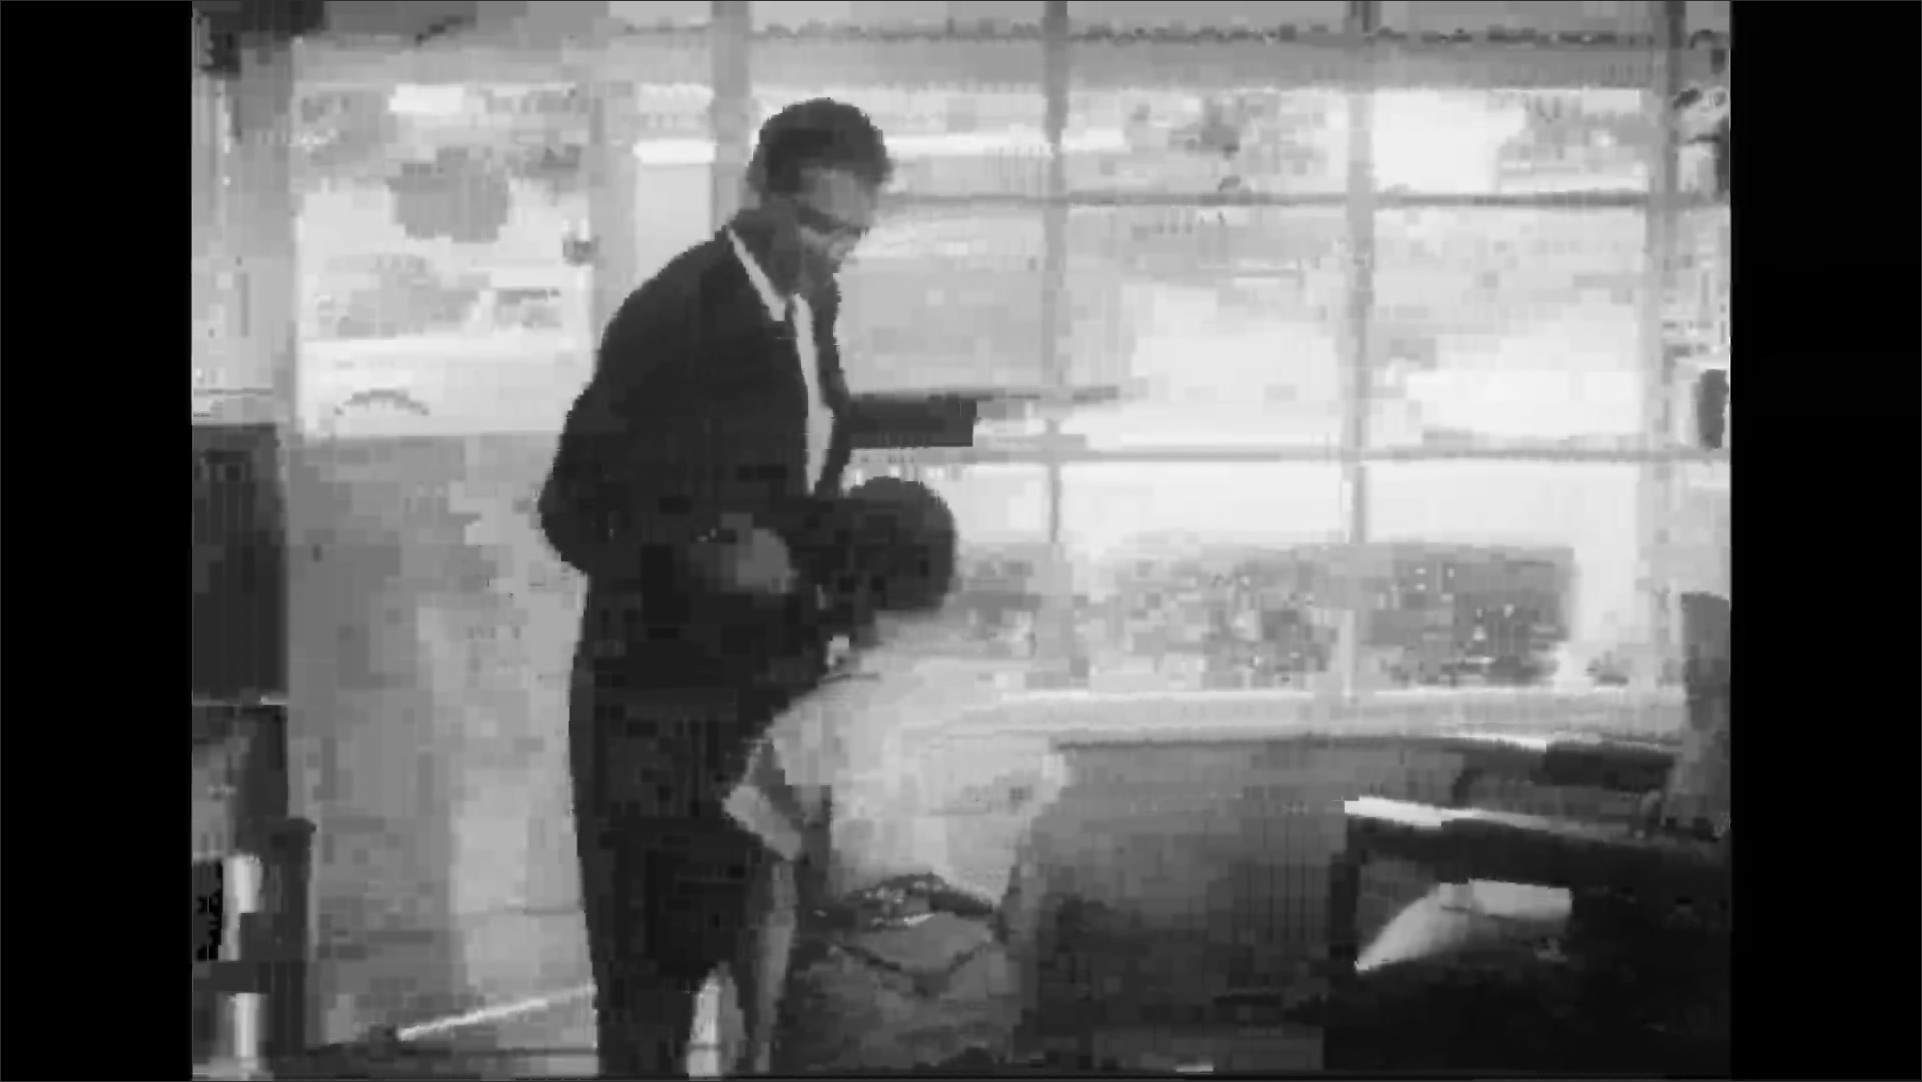 UNITED STATES 1950s: Man pays barber, takes son from shop / Man and boy exit barber shop.